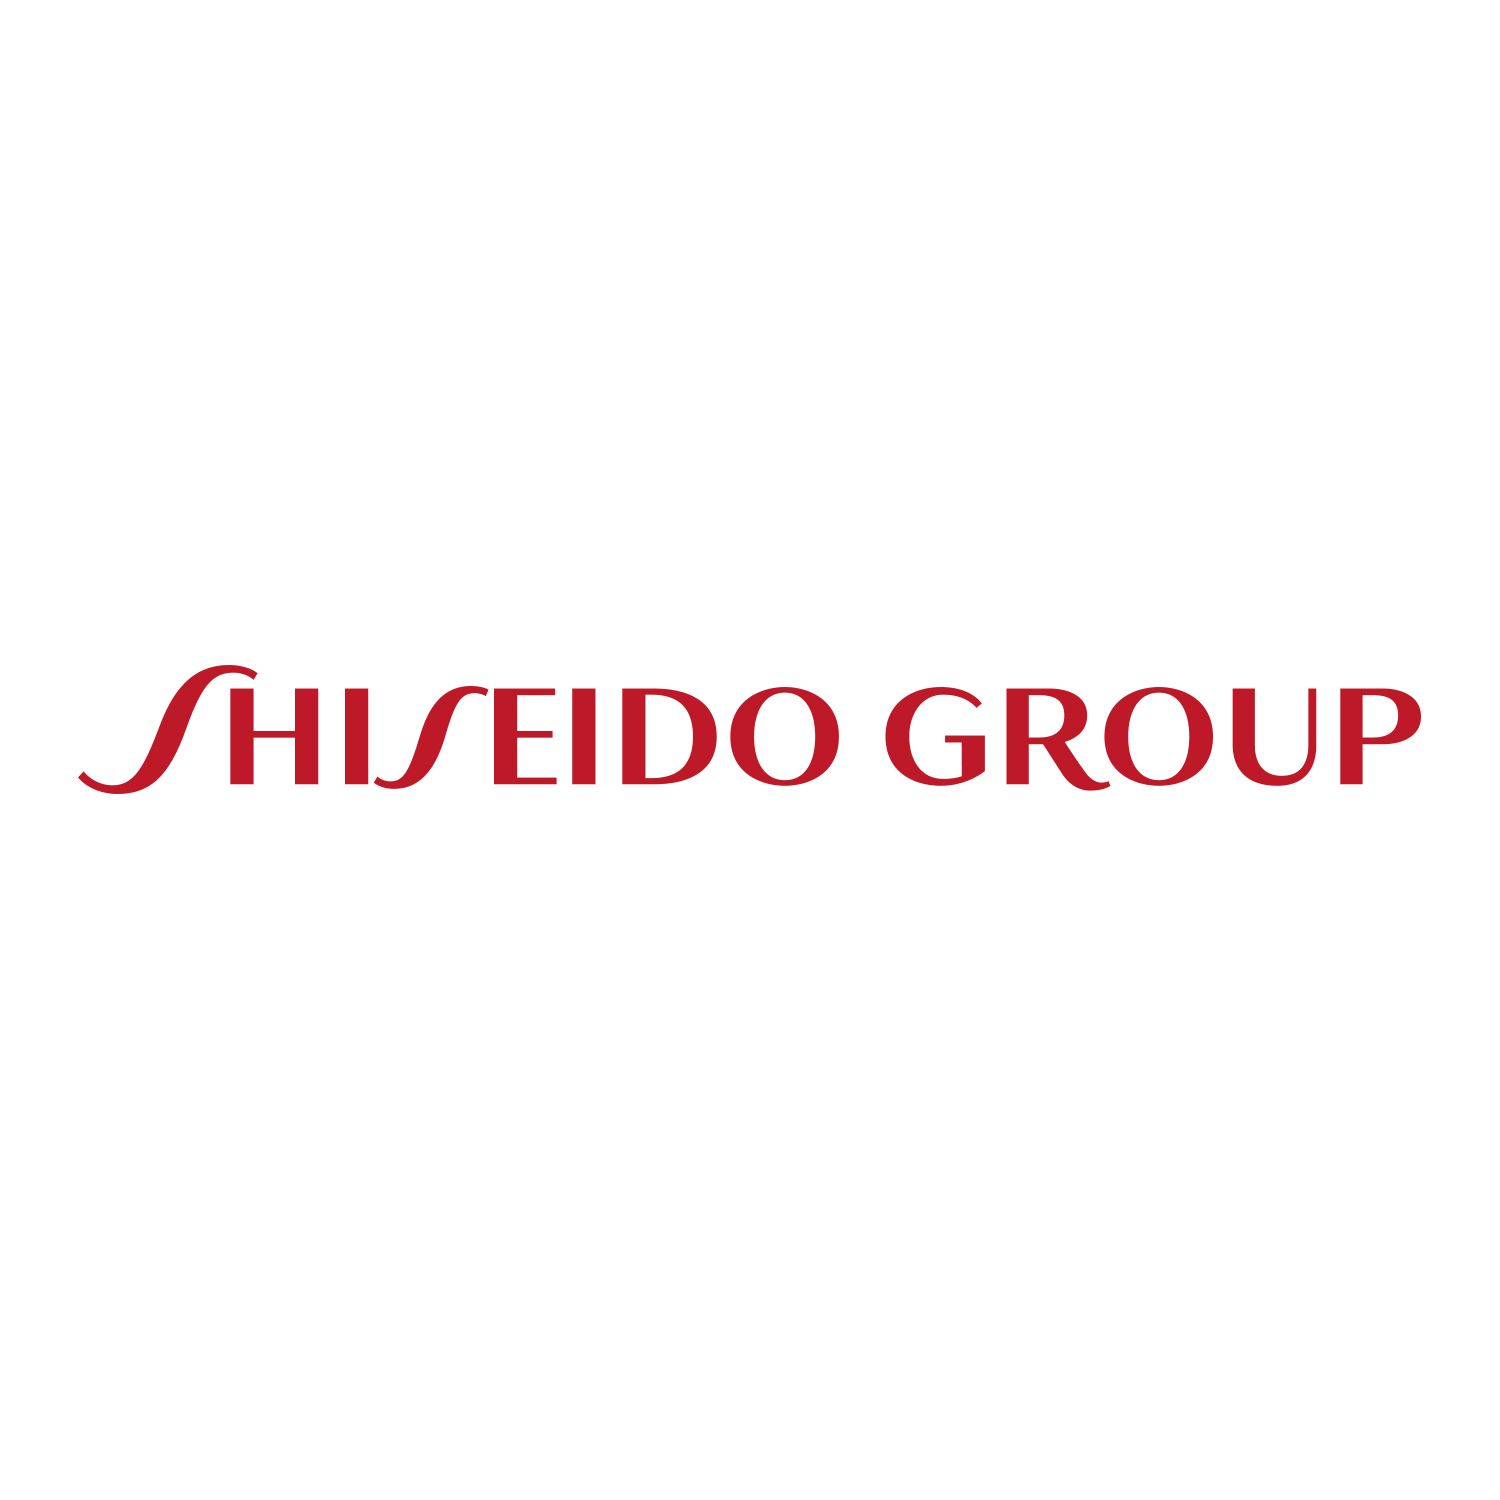 examining the global expansion of shiseido company ltd Shiseido announces jennifer connelly as the new global spokesperson for the shiseido as shiseido co, ltd celebrates its 140th anniversary, the commitment to her family and approach to living a beautiful life embodies the core values of our company, and match those of the shiseido.